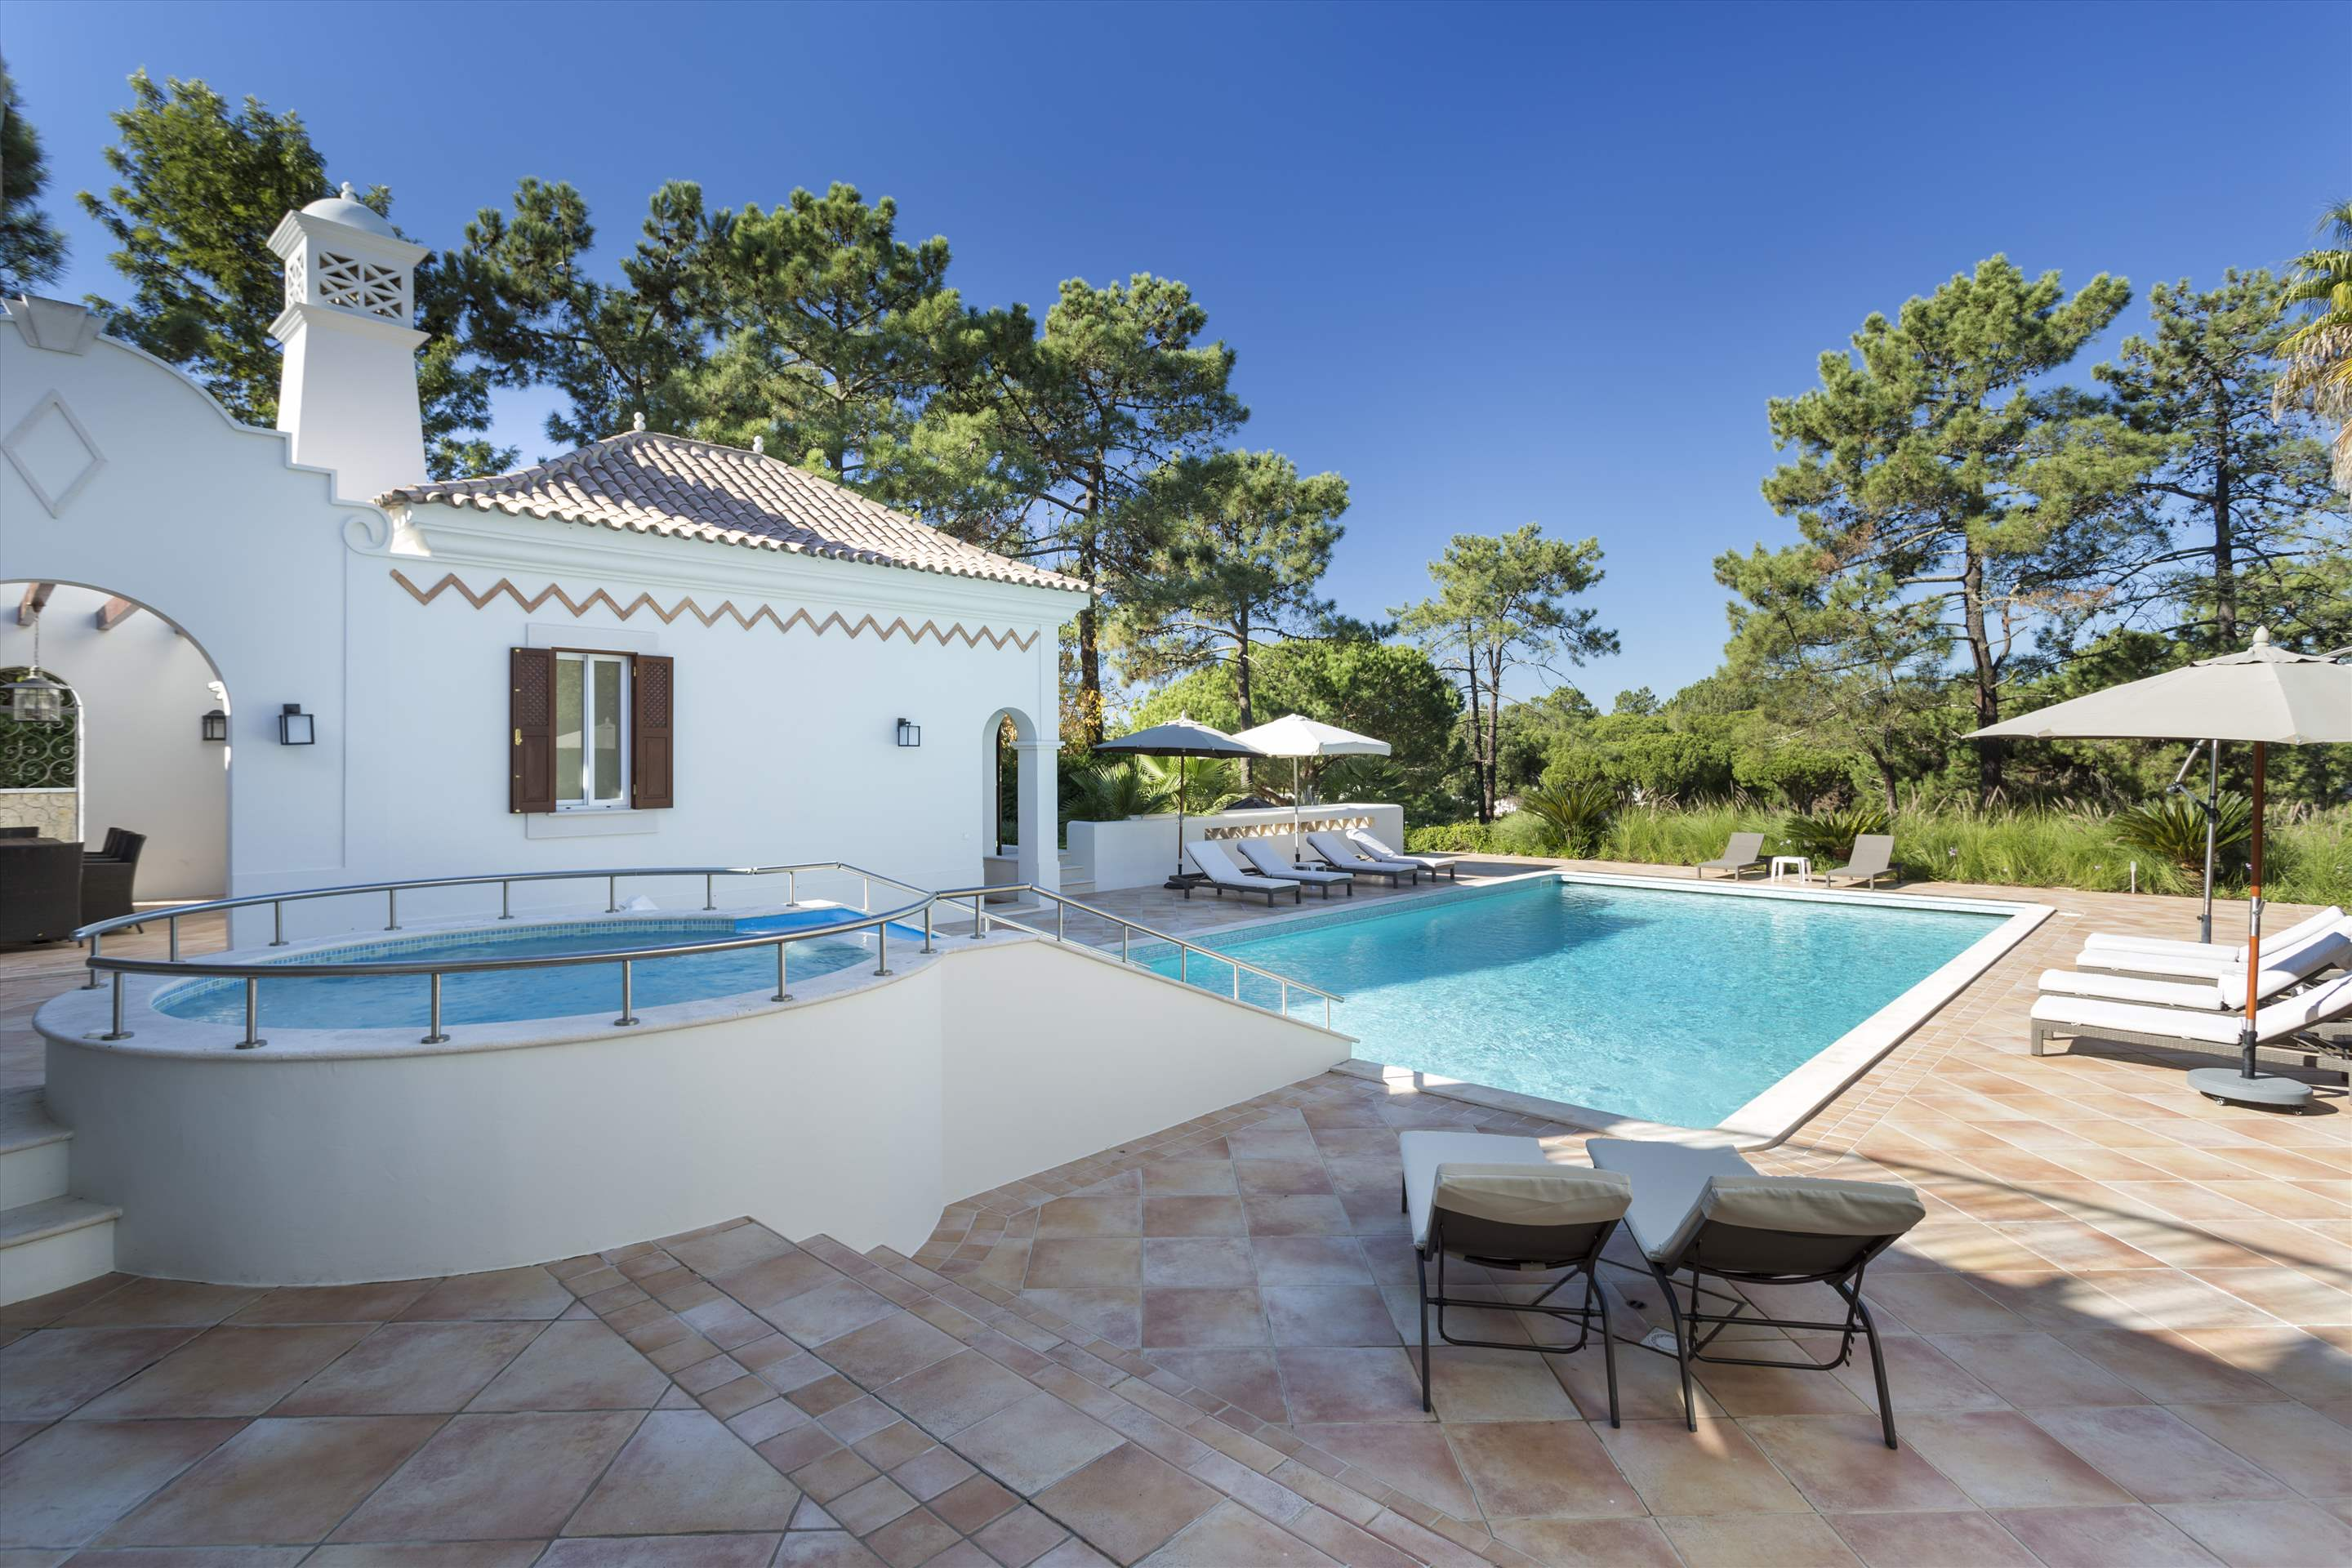 Villa Lantana 2, Main house & Annexe, 6 bedrooms, 6 bedroom villa in Quinta do Lago, Algarve Photo #15